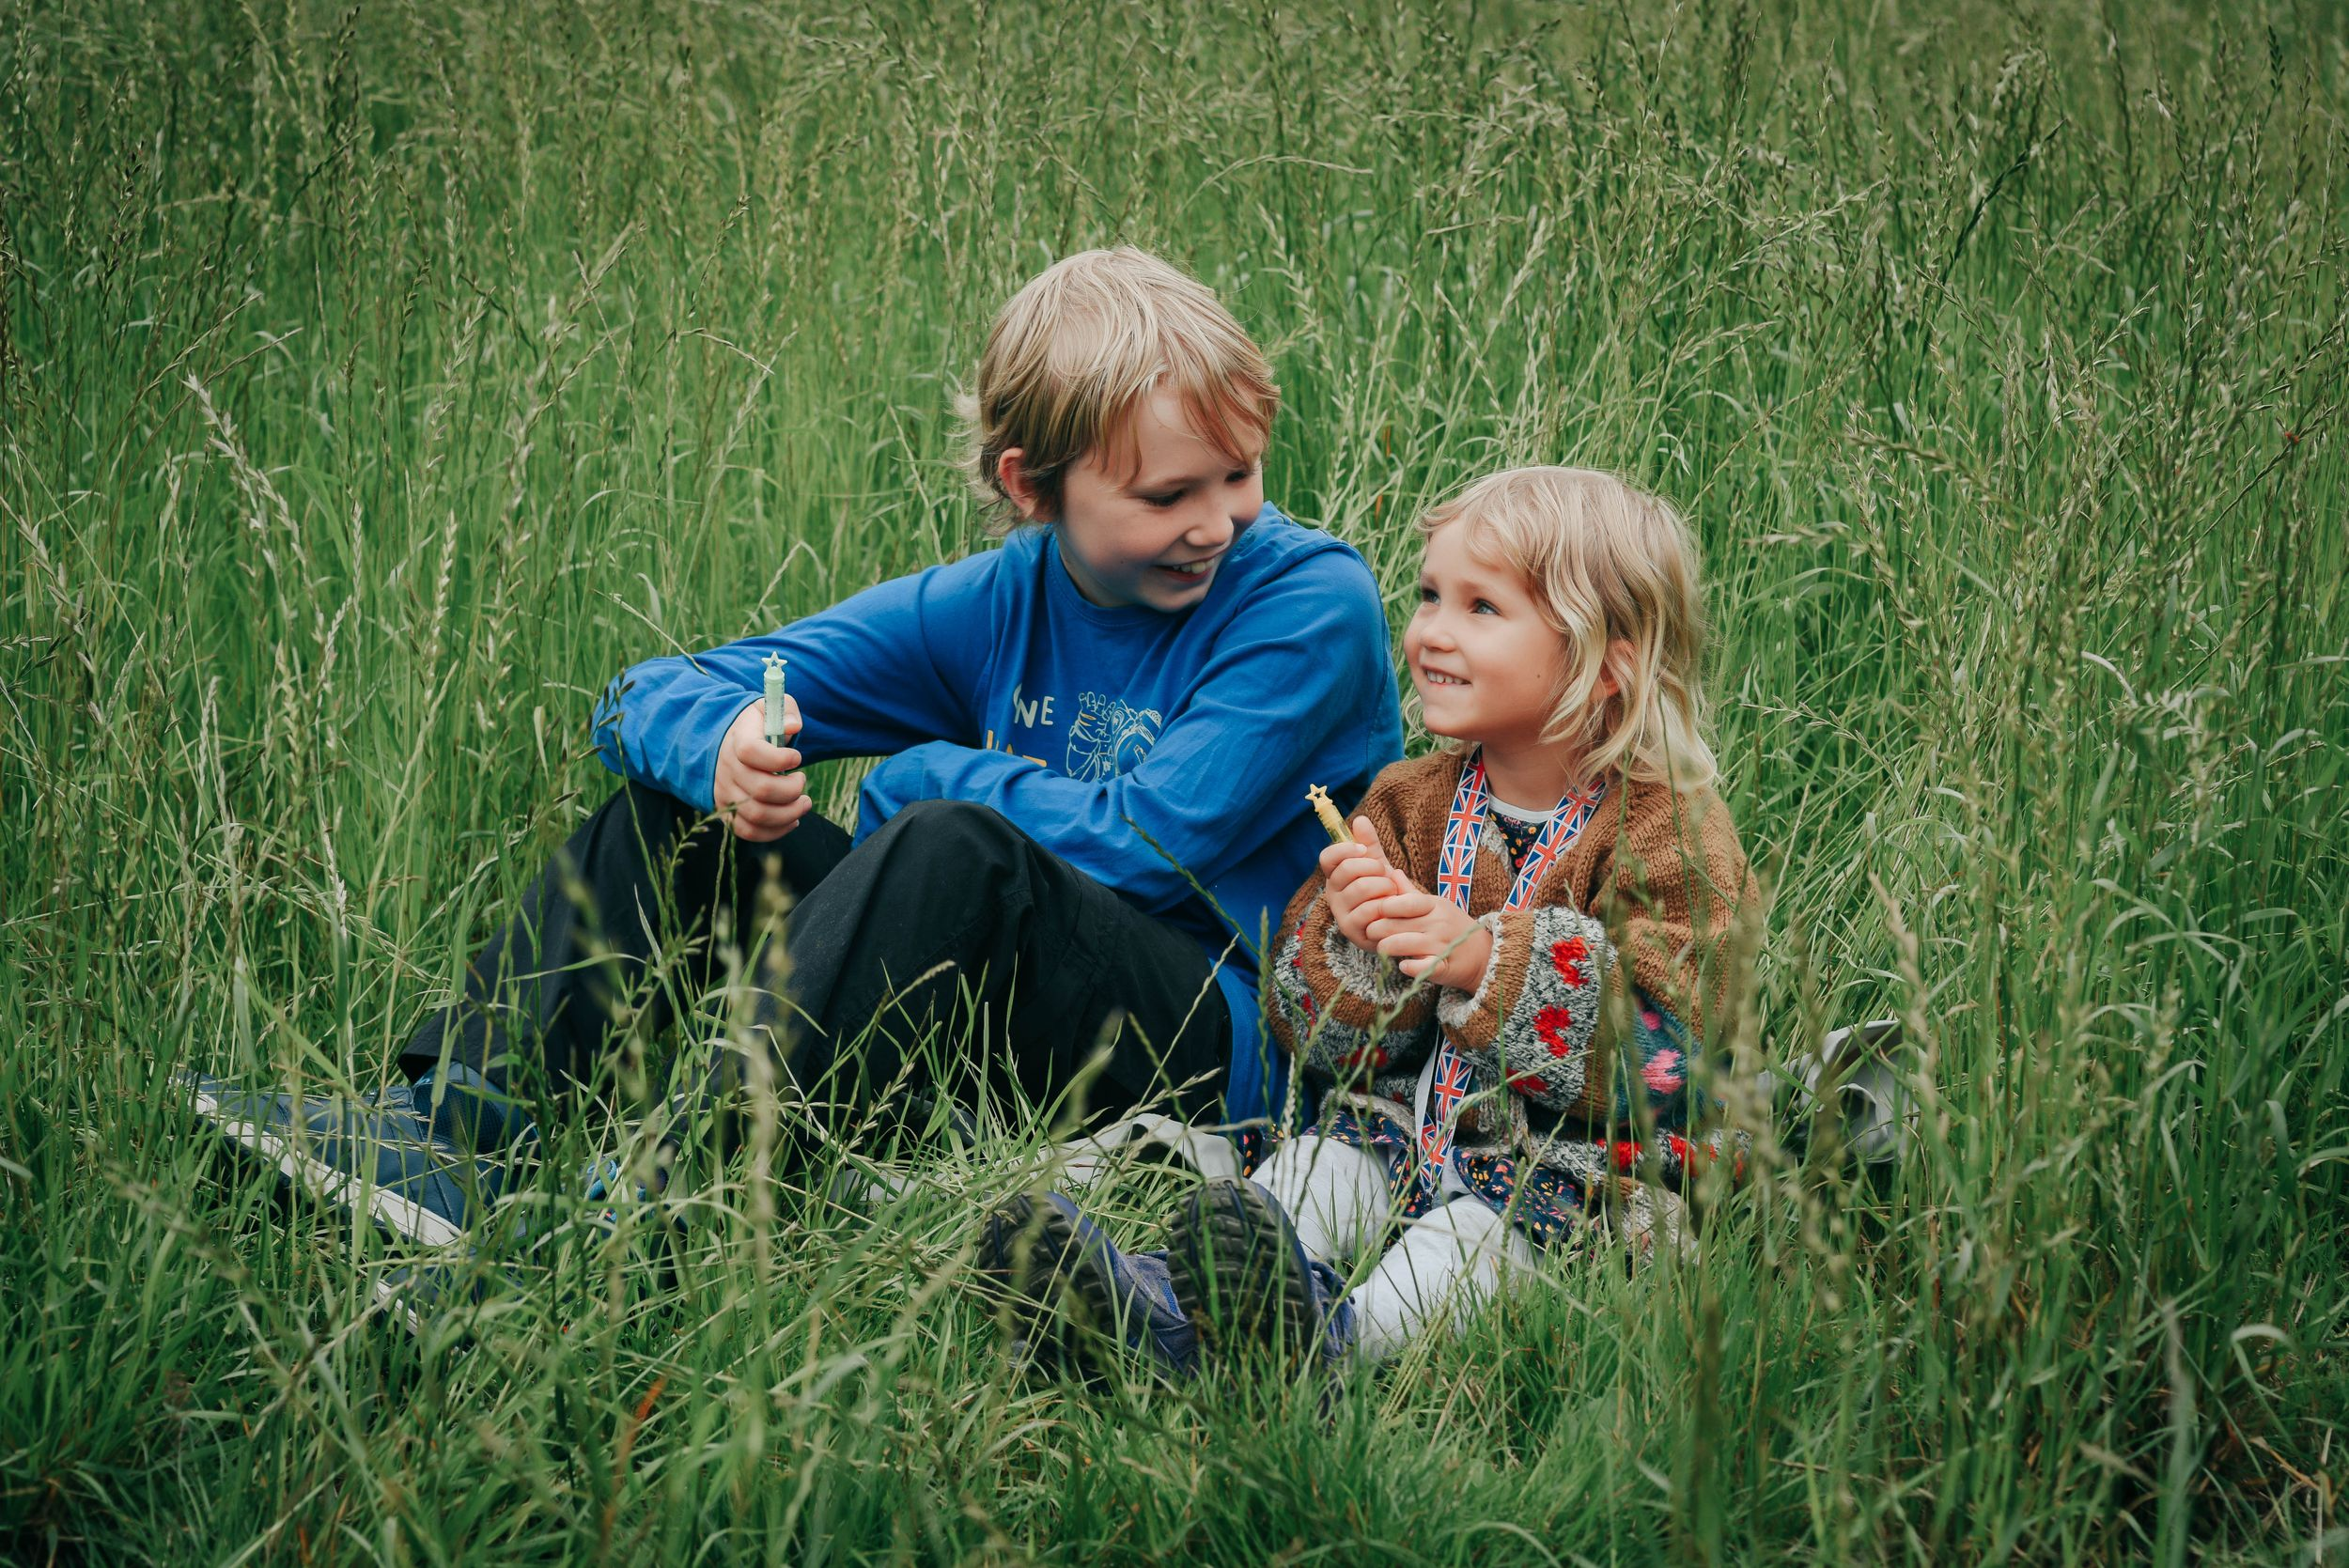 Zara Davis Photography Stroud Gloucestershire Cotswolds Pets Family kids in long grass